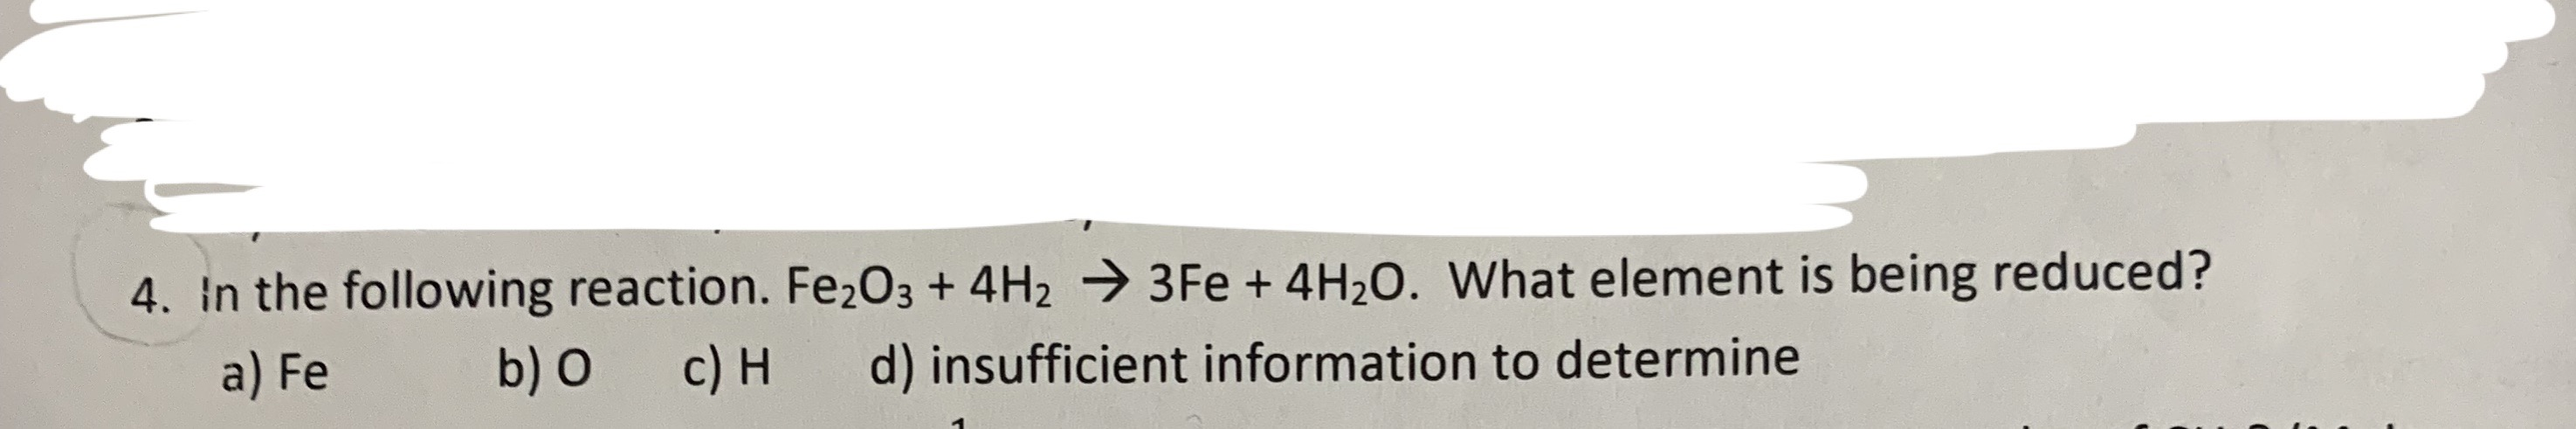 4. In the following reaction. Fe2O3 + 4H2 3 Fe + 4H20. What element is being reduced? a) Fe b) O c) H d) insufficient information to determine